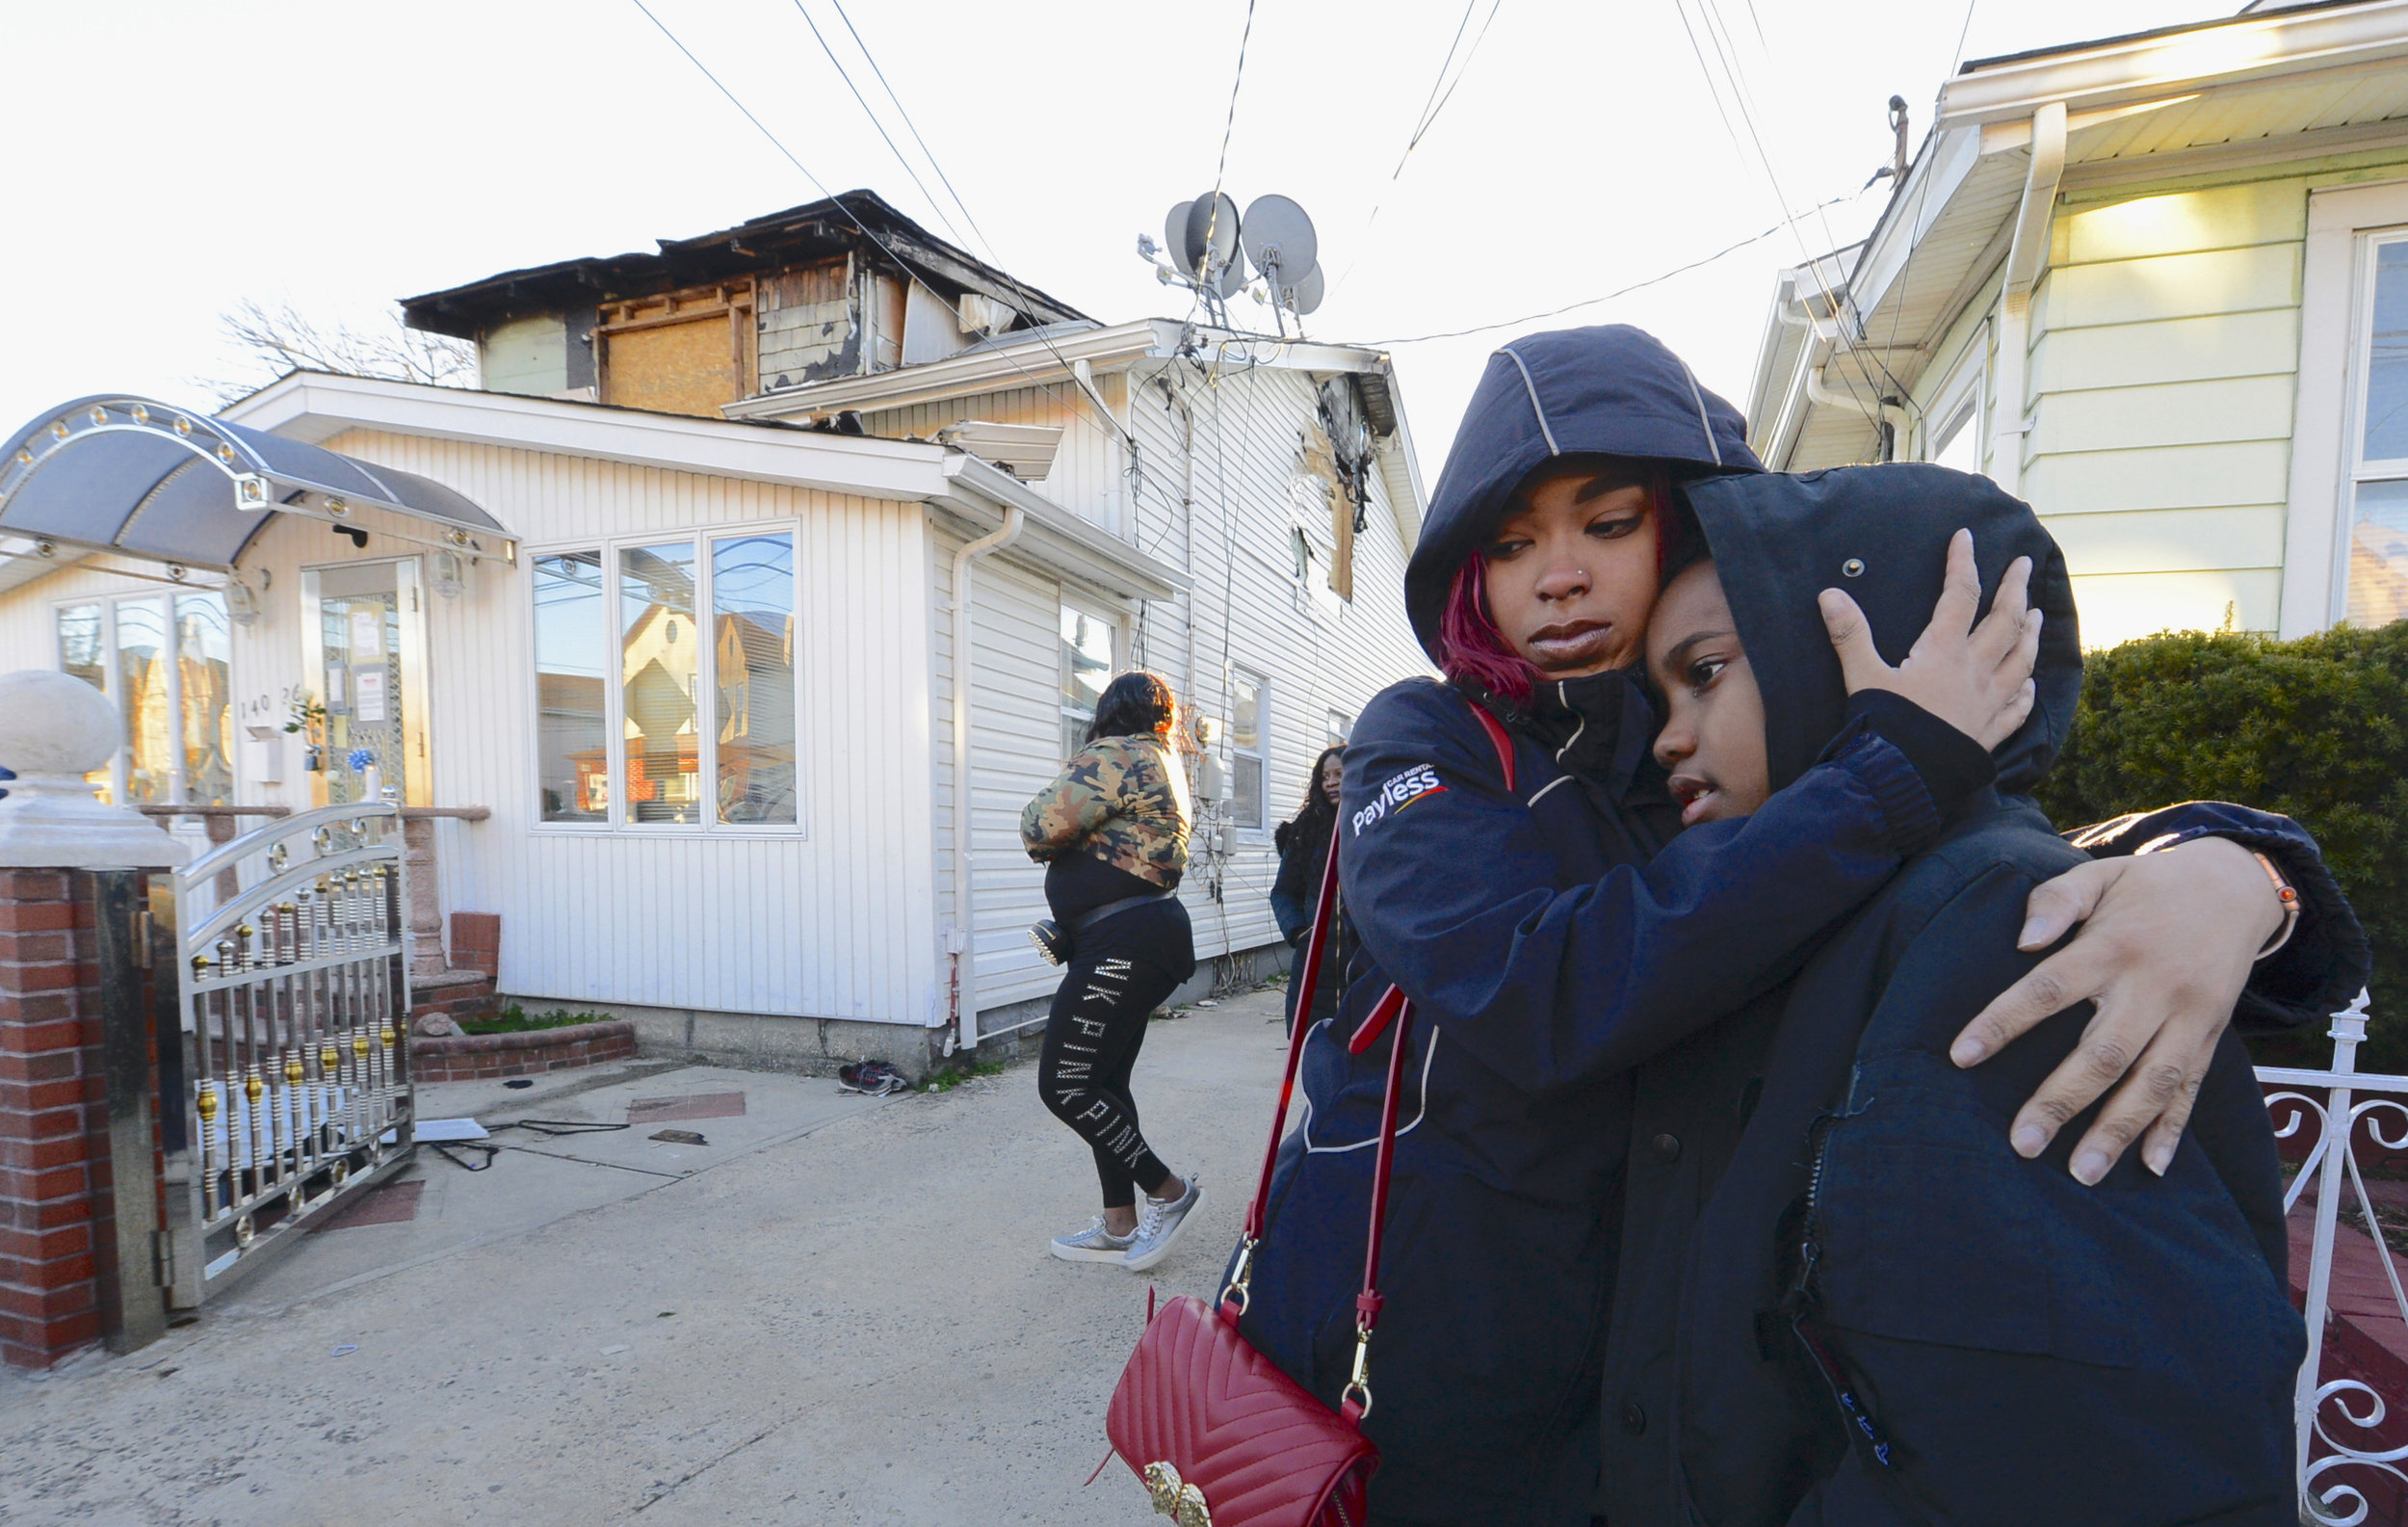 Cousins embrace outside the devastated home. Eagle photo by Todd Maisel